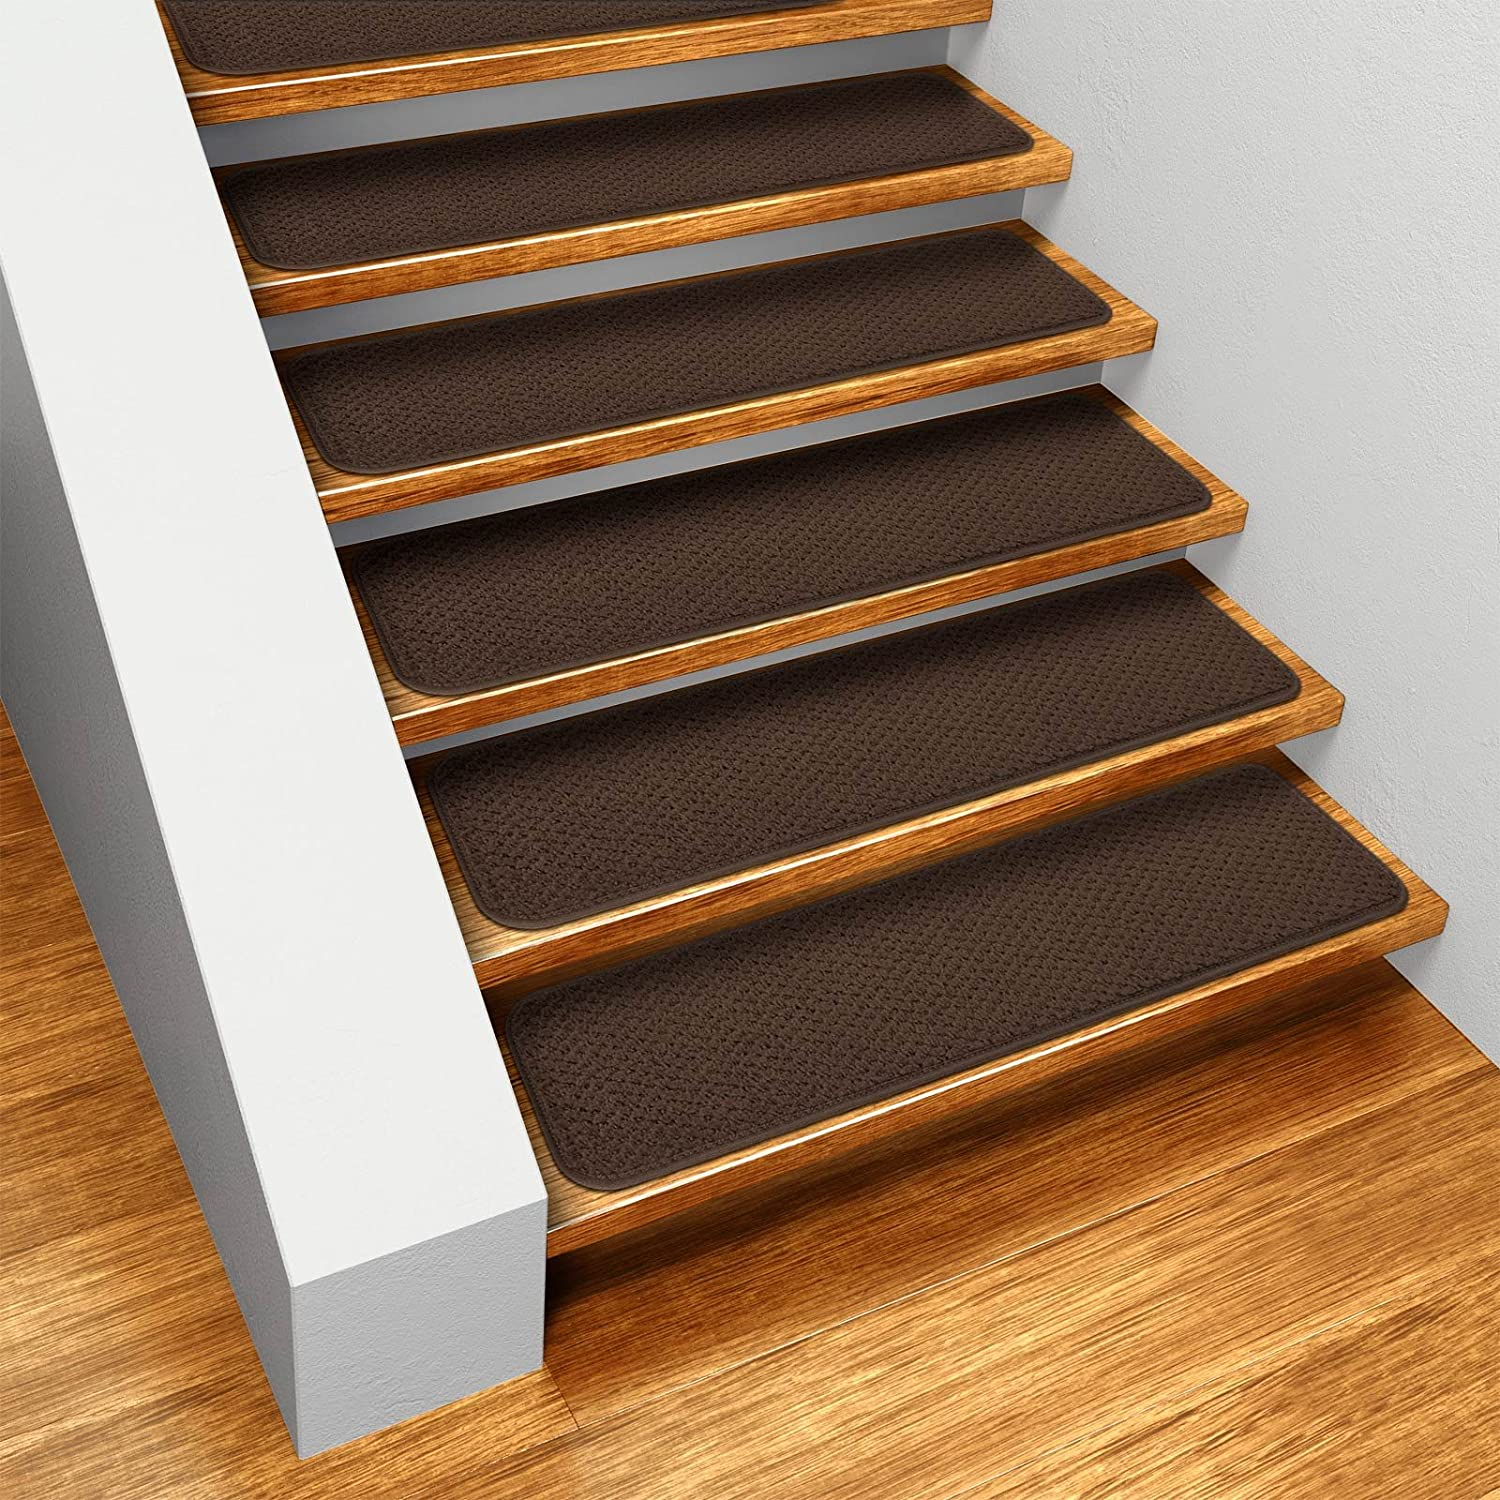 Amazon.com: Set Of 15 Skid Resistant Carpet Stair Treads   Chocolate Brown    8 In. X 30 In.   Several Other Sizes To Choose From: Home U0026 Kitchen